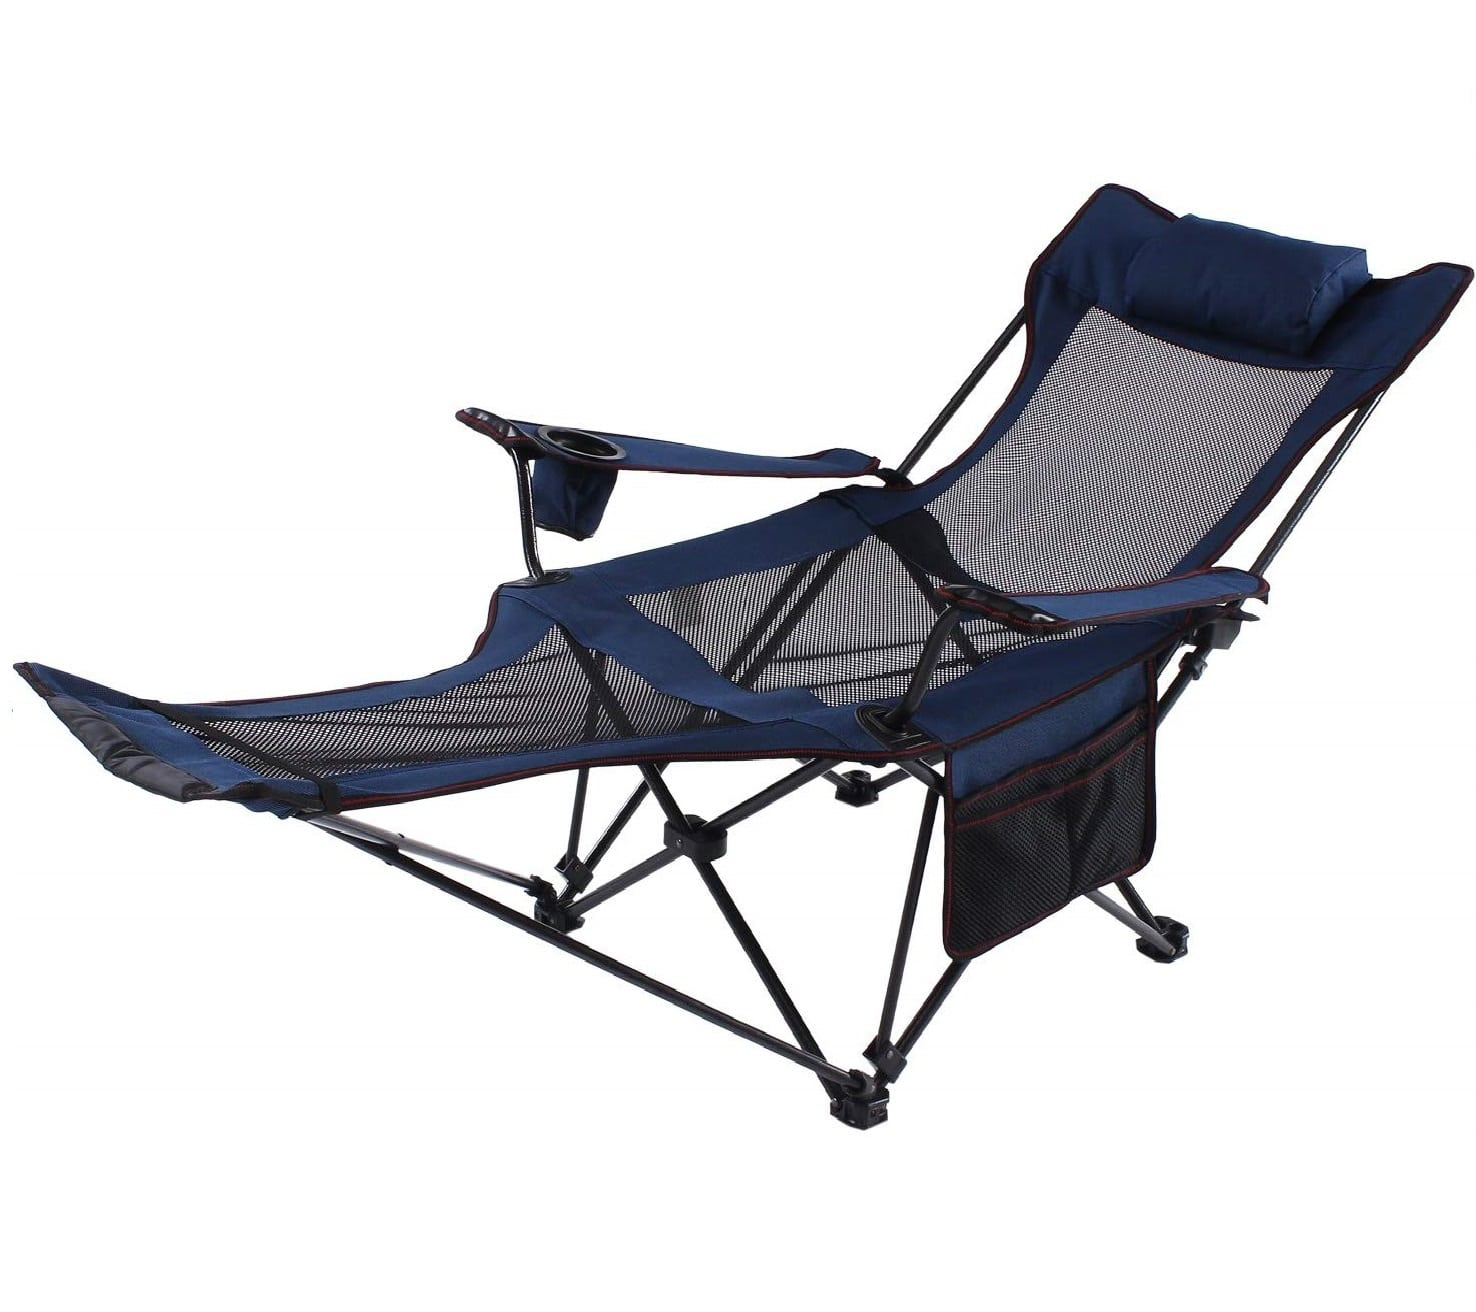 11. Seatopia Recliner Folding Lounge Chair with Backpacking and Storage Bak - Outdoor Lounge Chair Plus Headrest and Footrest